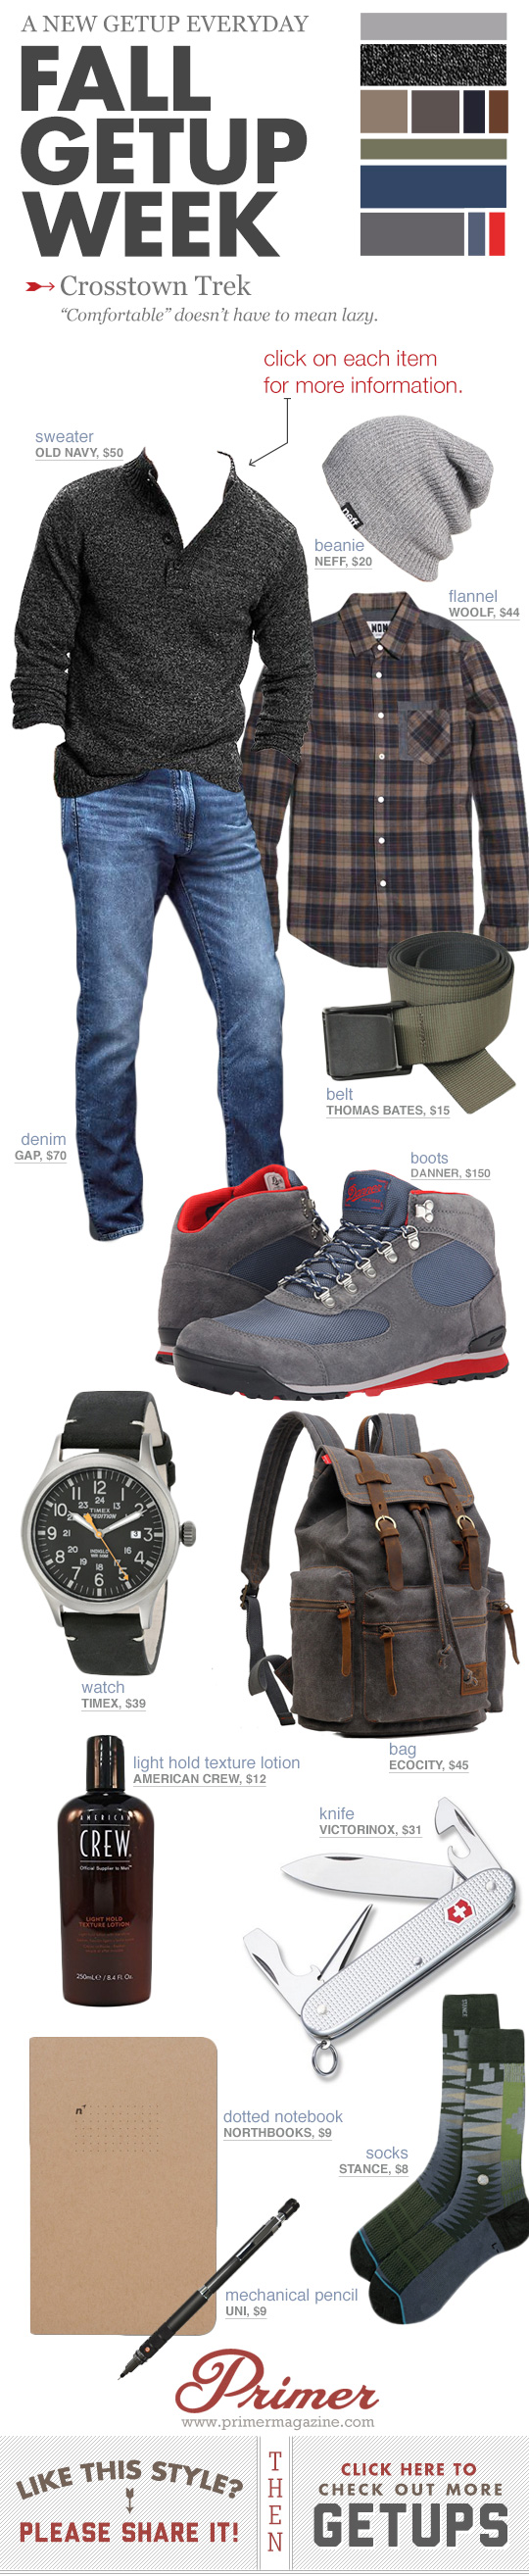 Fall Getup Week - Crosstown Trek - Beanie with sweater, jeans, and Danner boots